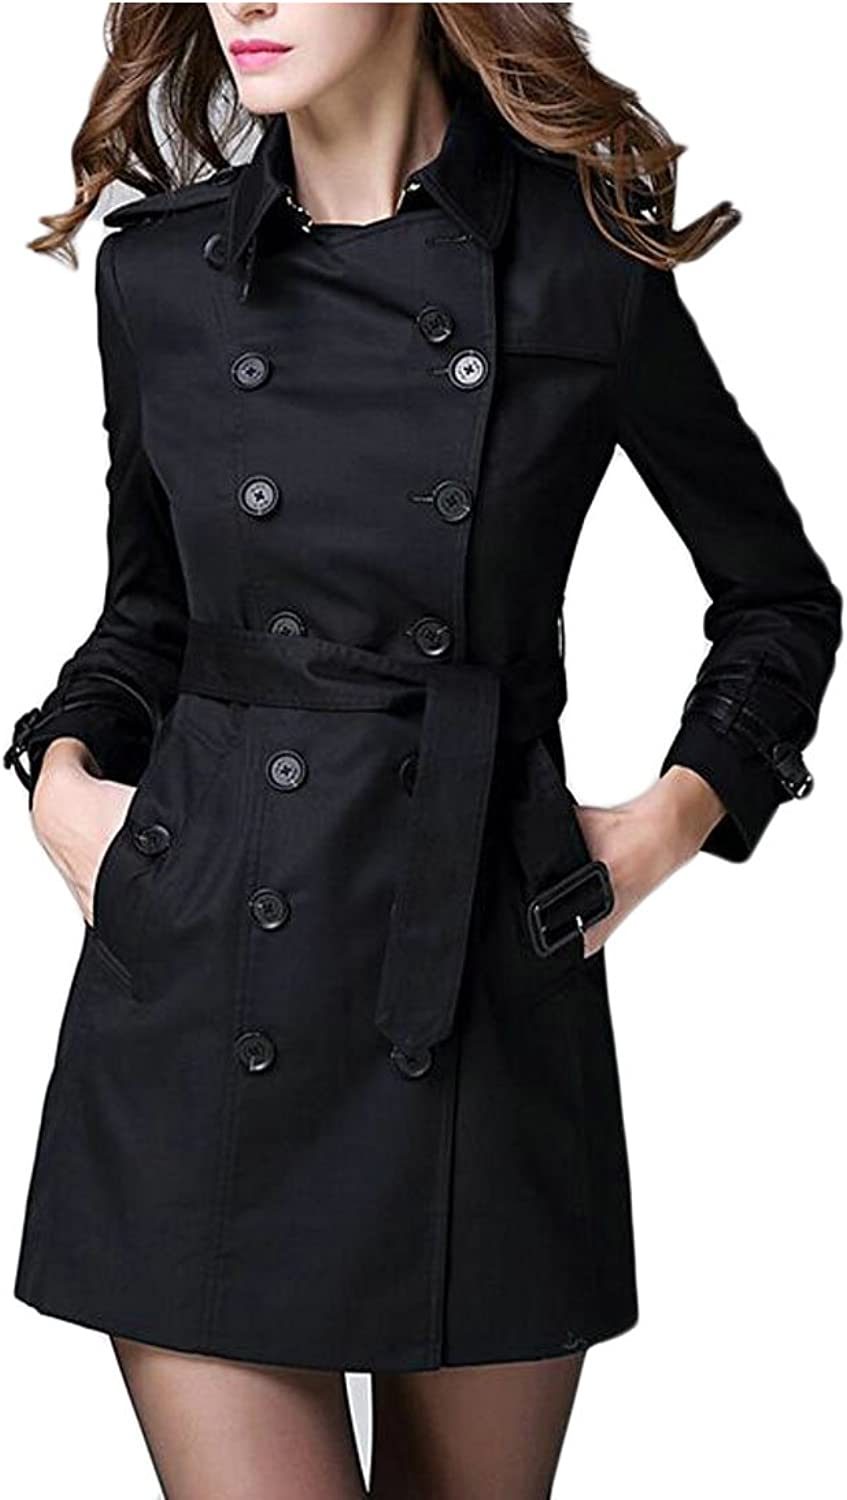 GAGA Women's Autumn Lapel Cotton Double Breasted Elegant Trench Coat With Belt